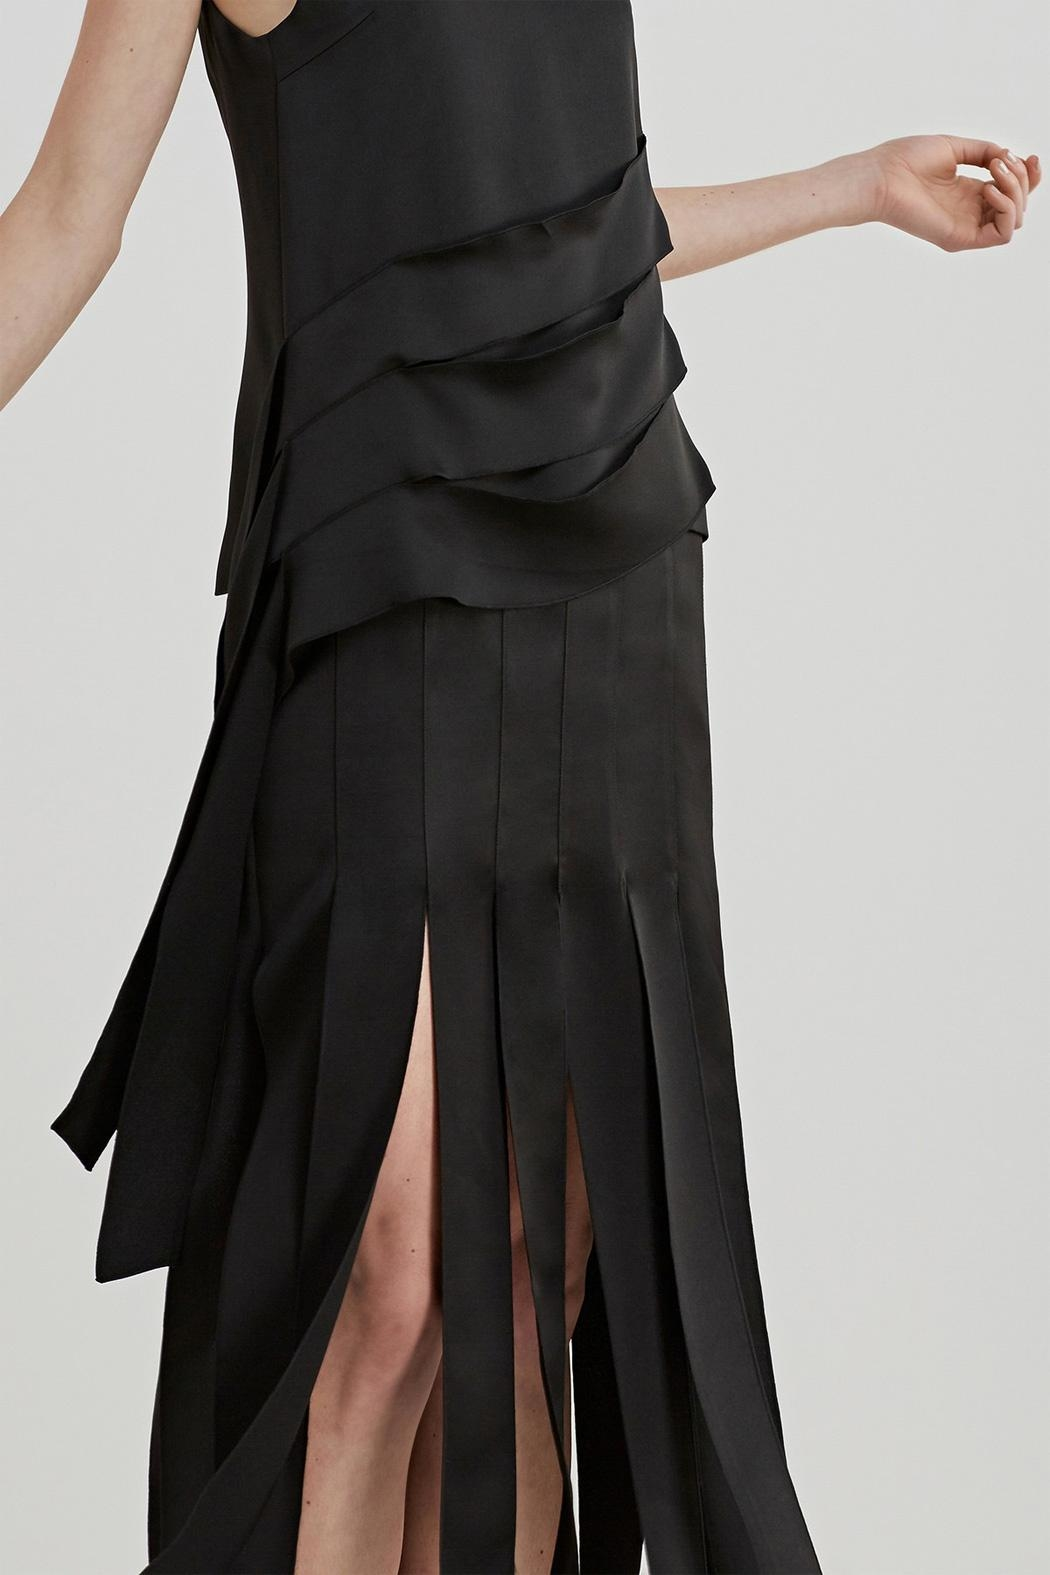 C/MEO COLLECTIVE Another Way Skirt - Back Cropped Image